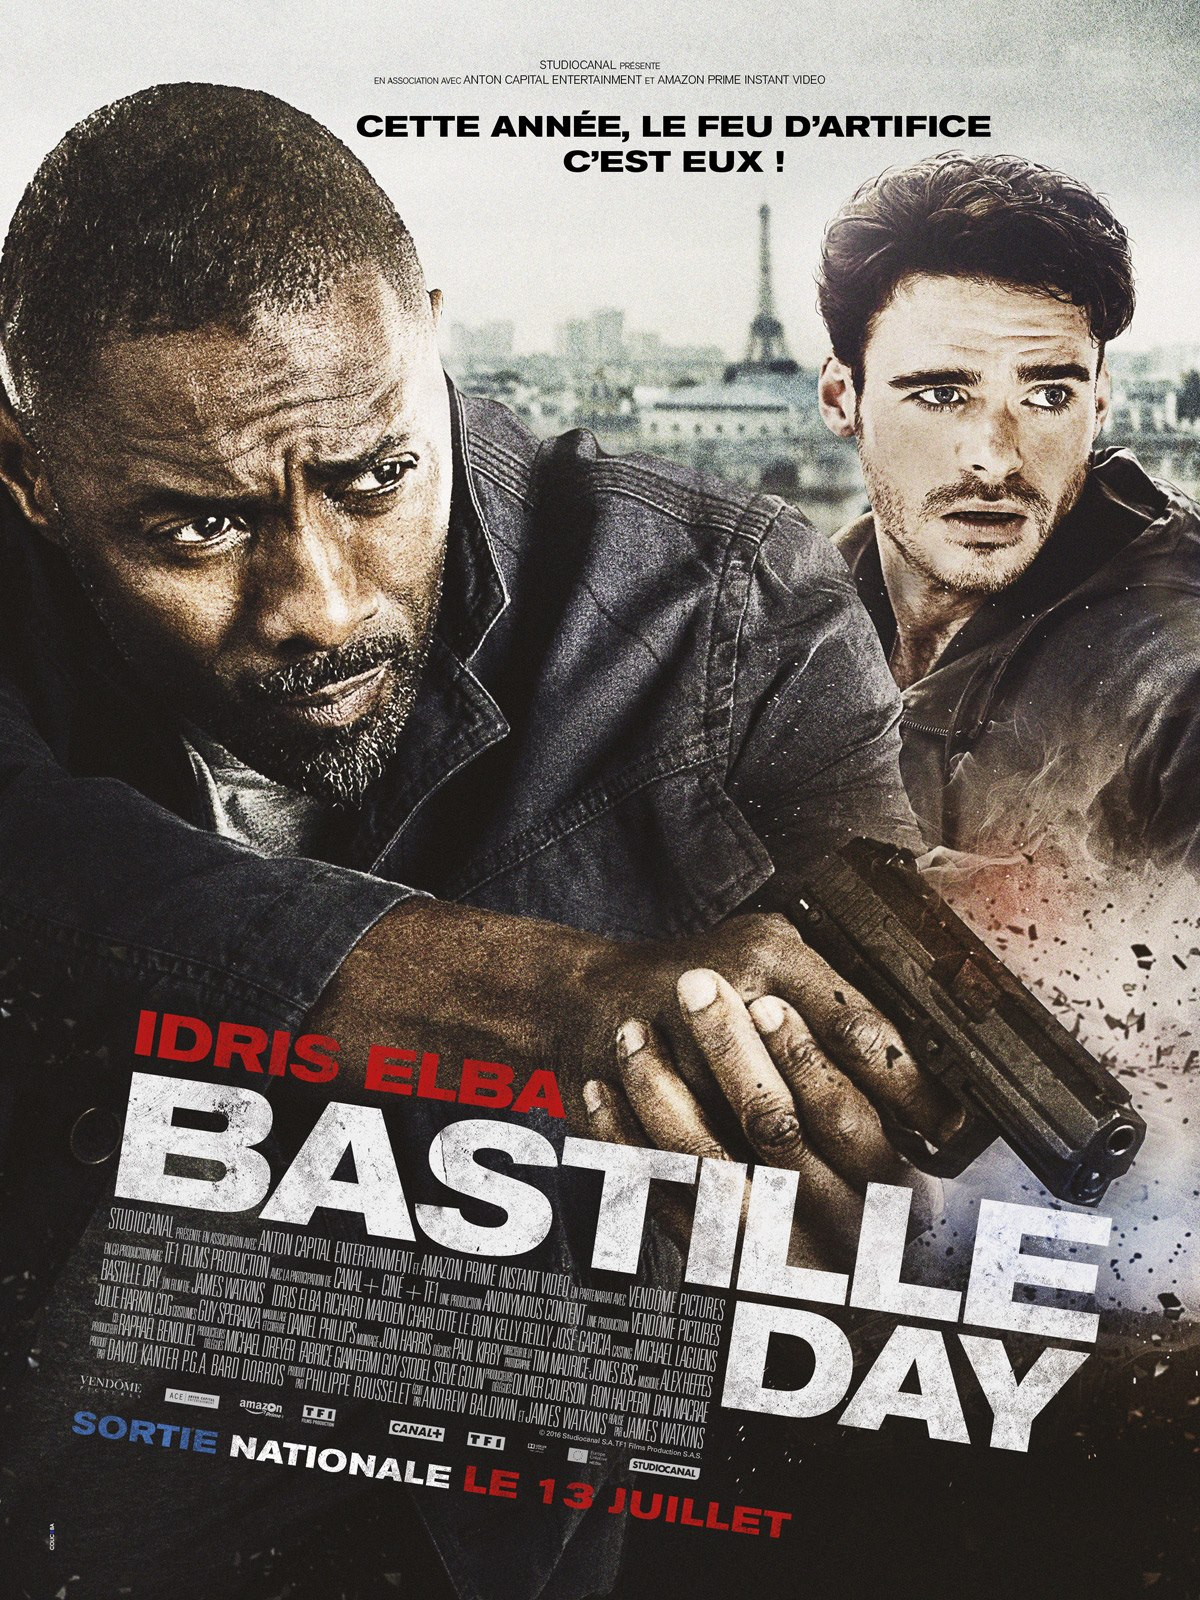 Bastille Day - Critique - Watkins - Idris Elba - Richard Madden